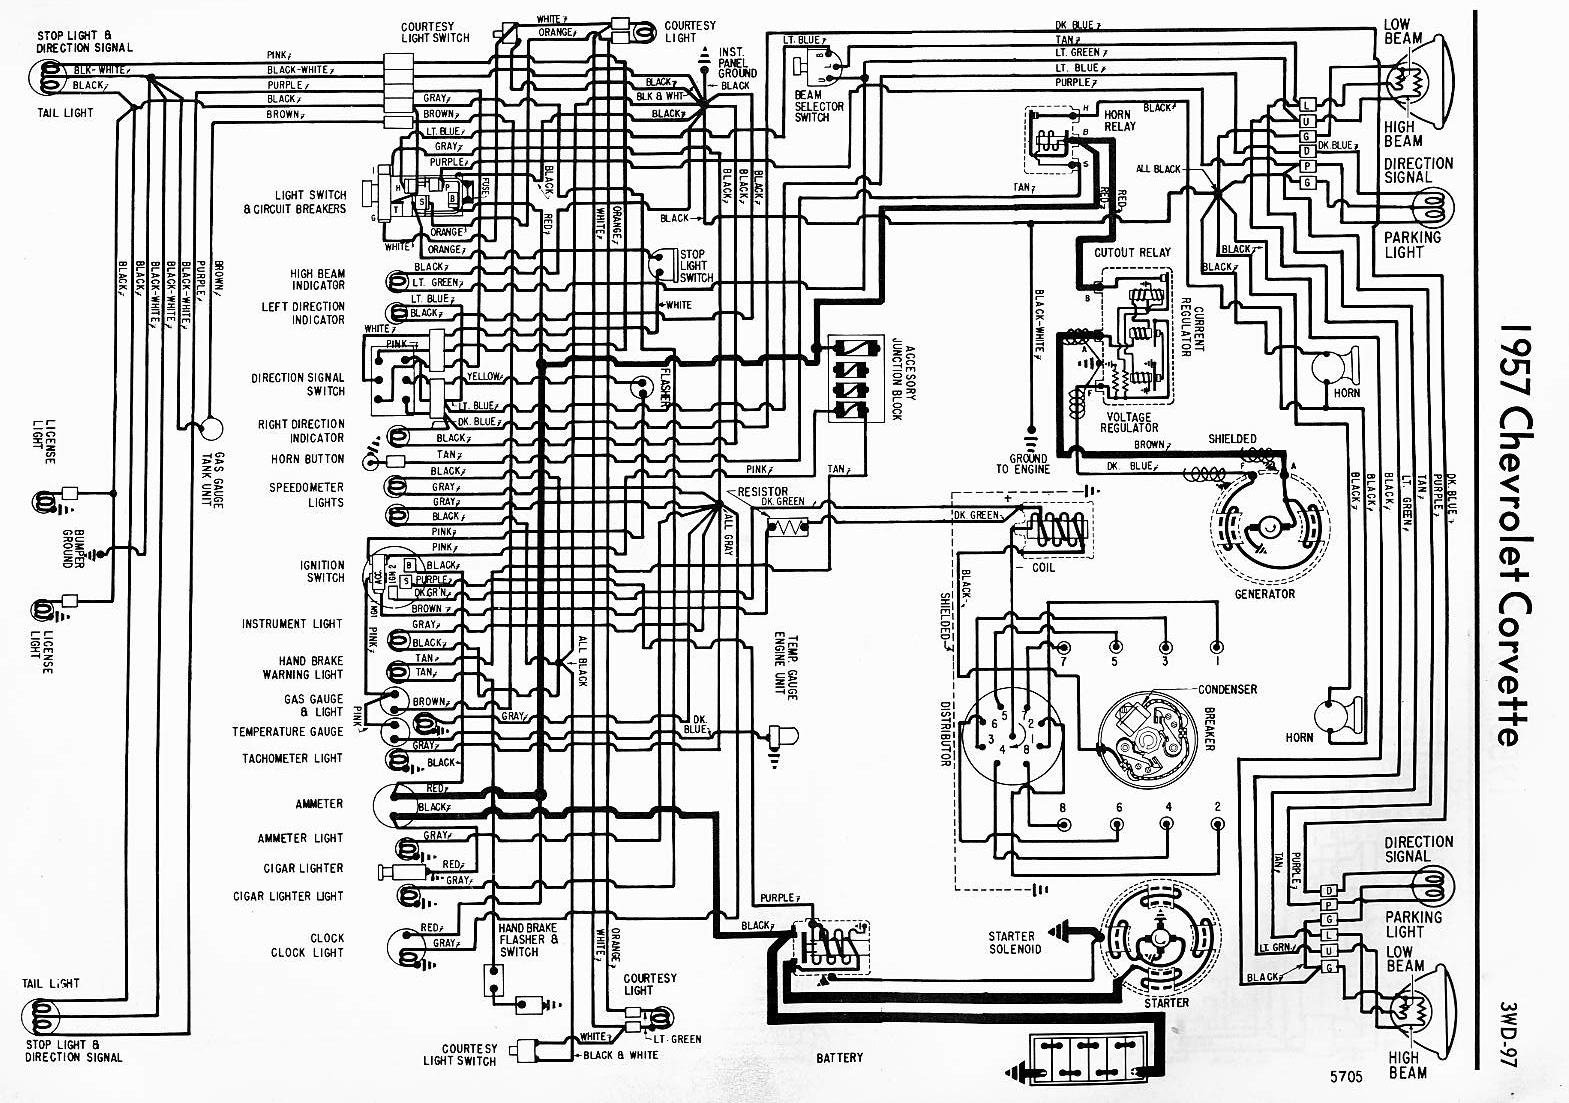 1972 Corvette Fuse Panel Diagram Gmc Sierra Trailer Wiring Harness Connector Begeboy Wiring Diagram Source